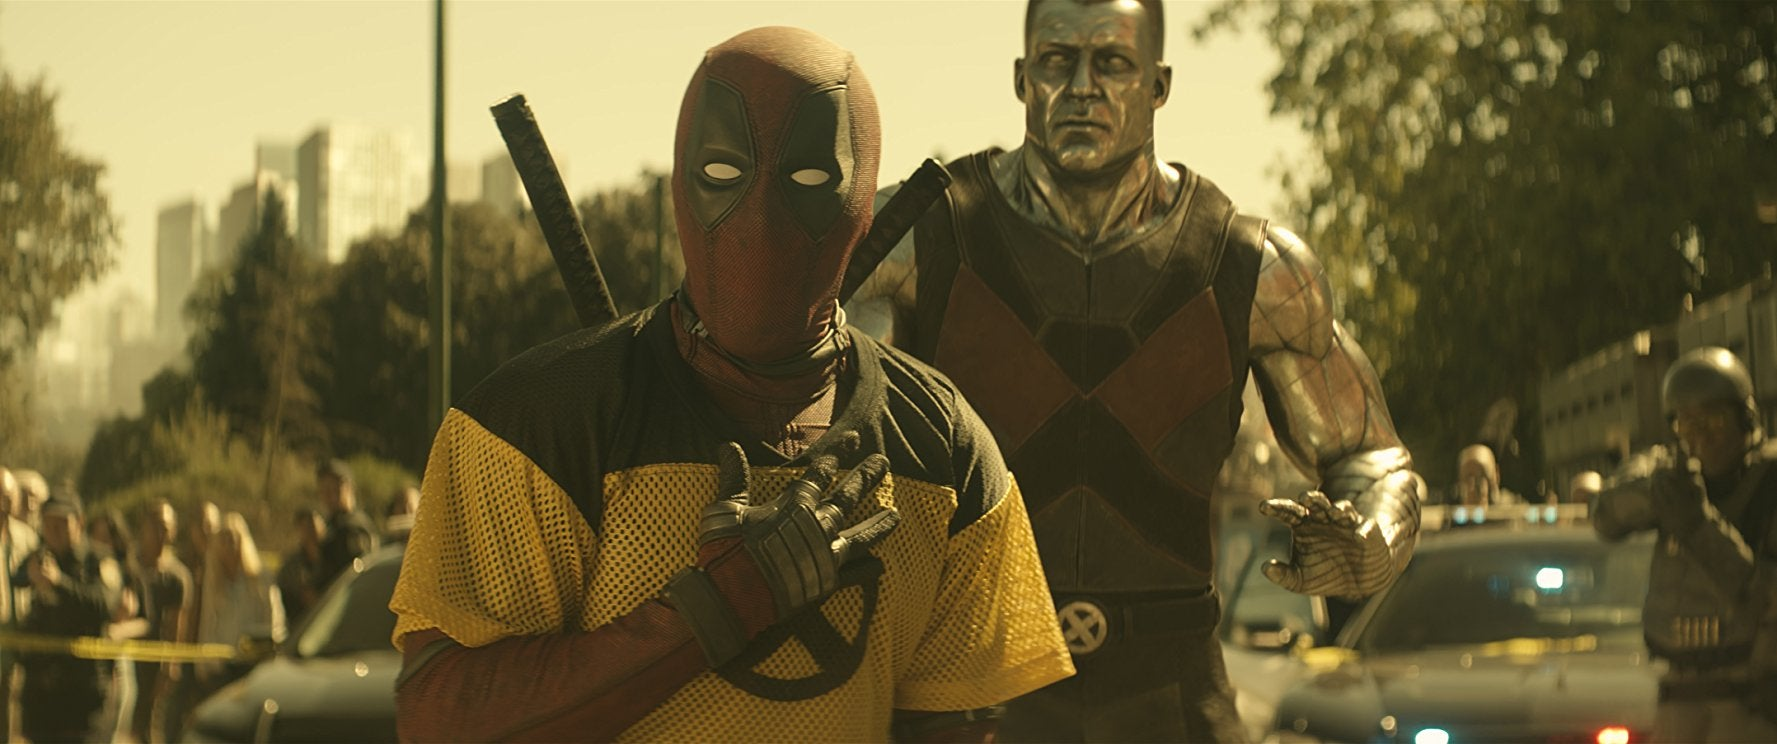 Deadpool, wearing his red suit and mask, stands in front of Colossus in a still from Deadpool 2.